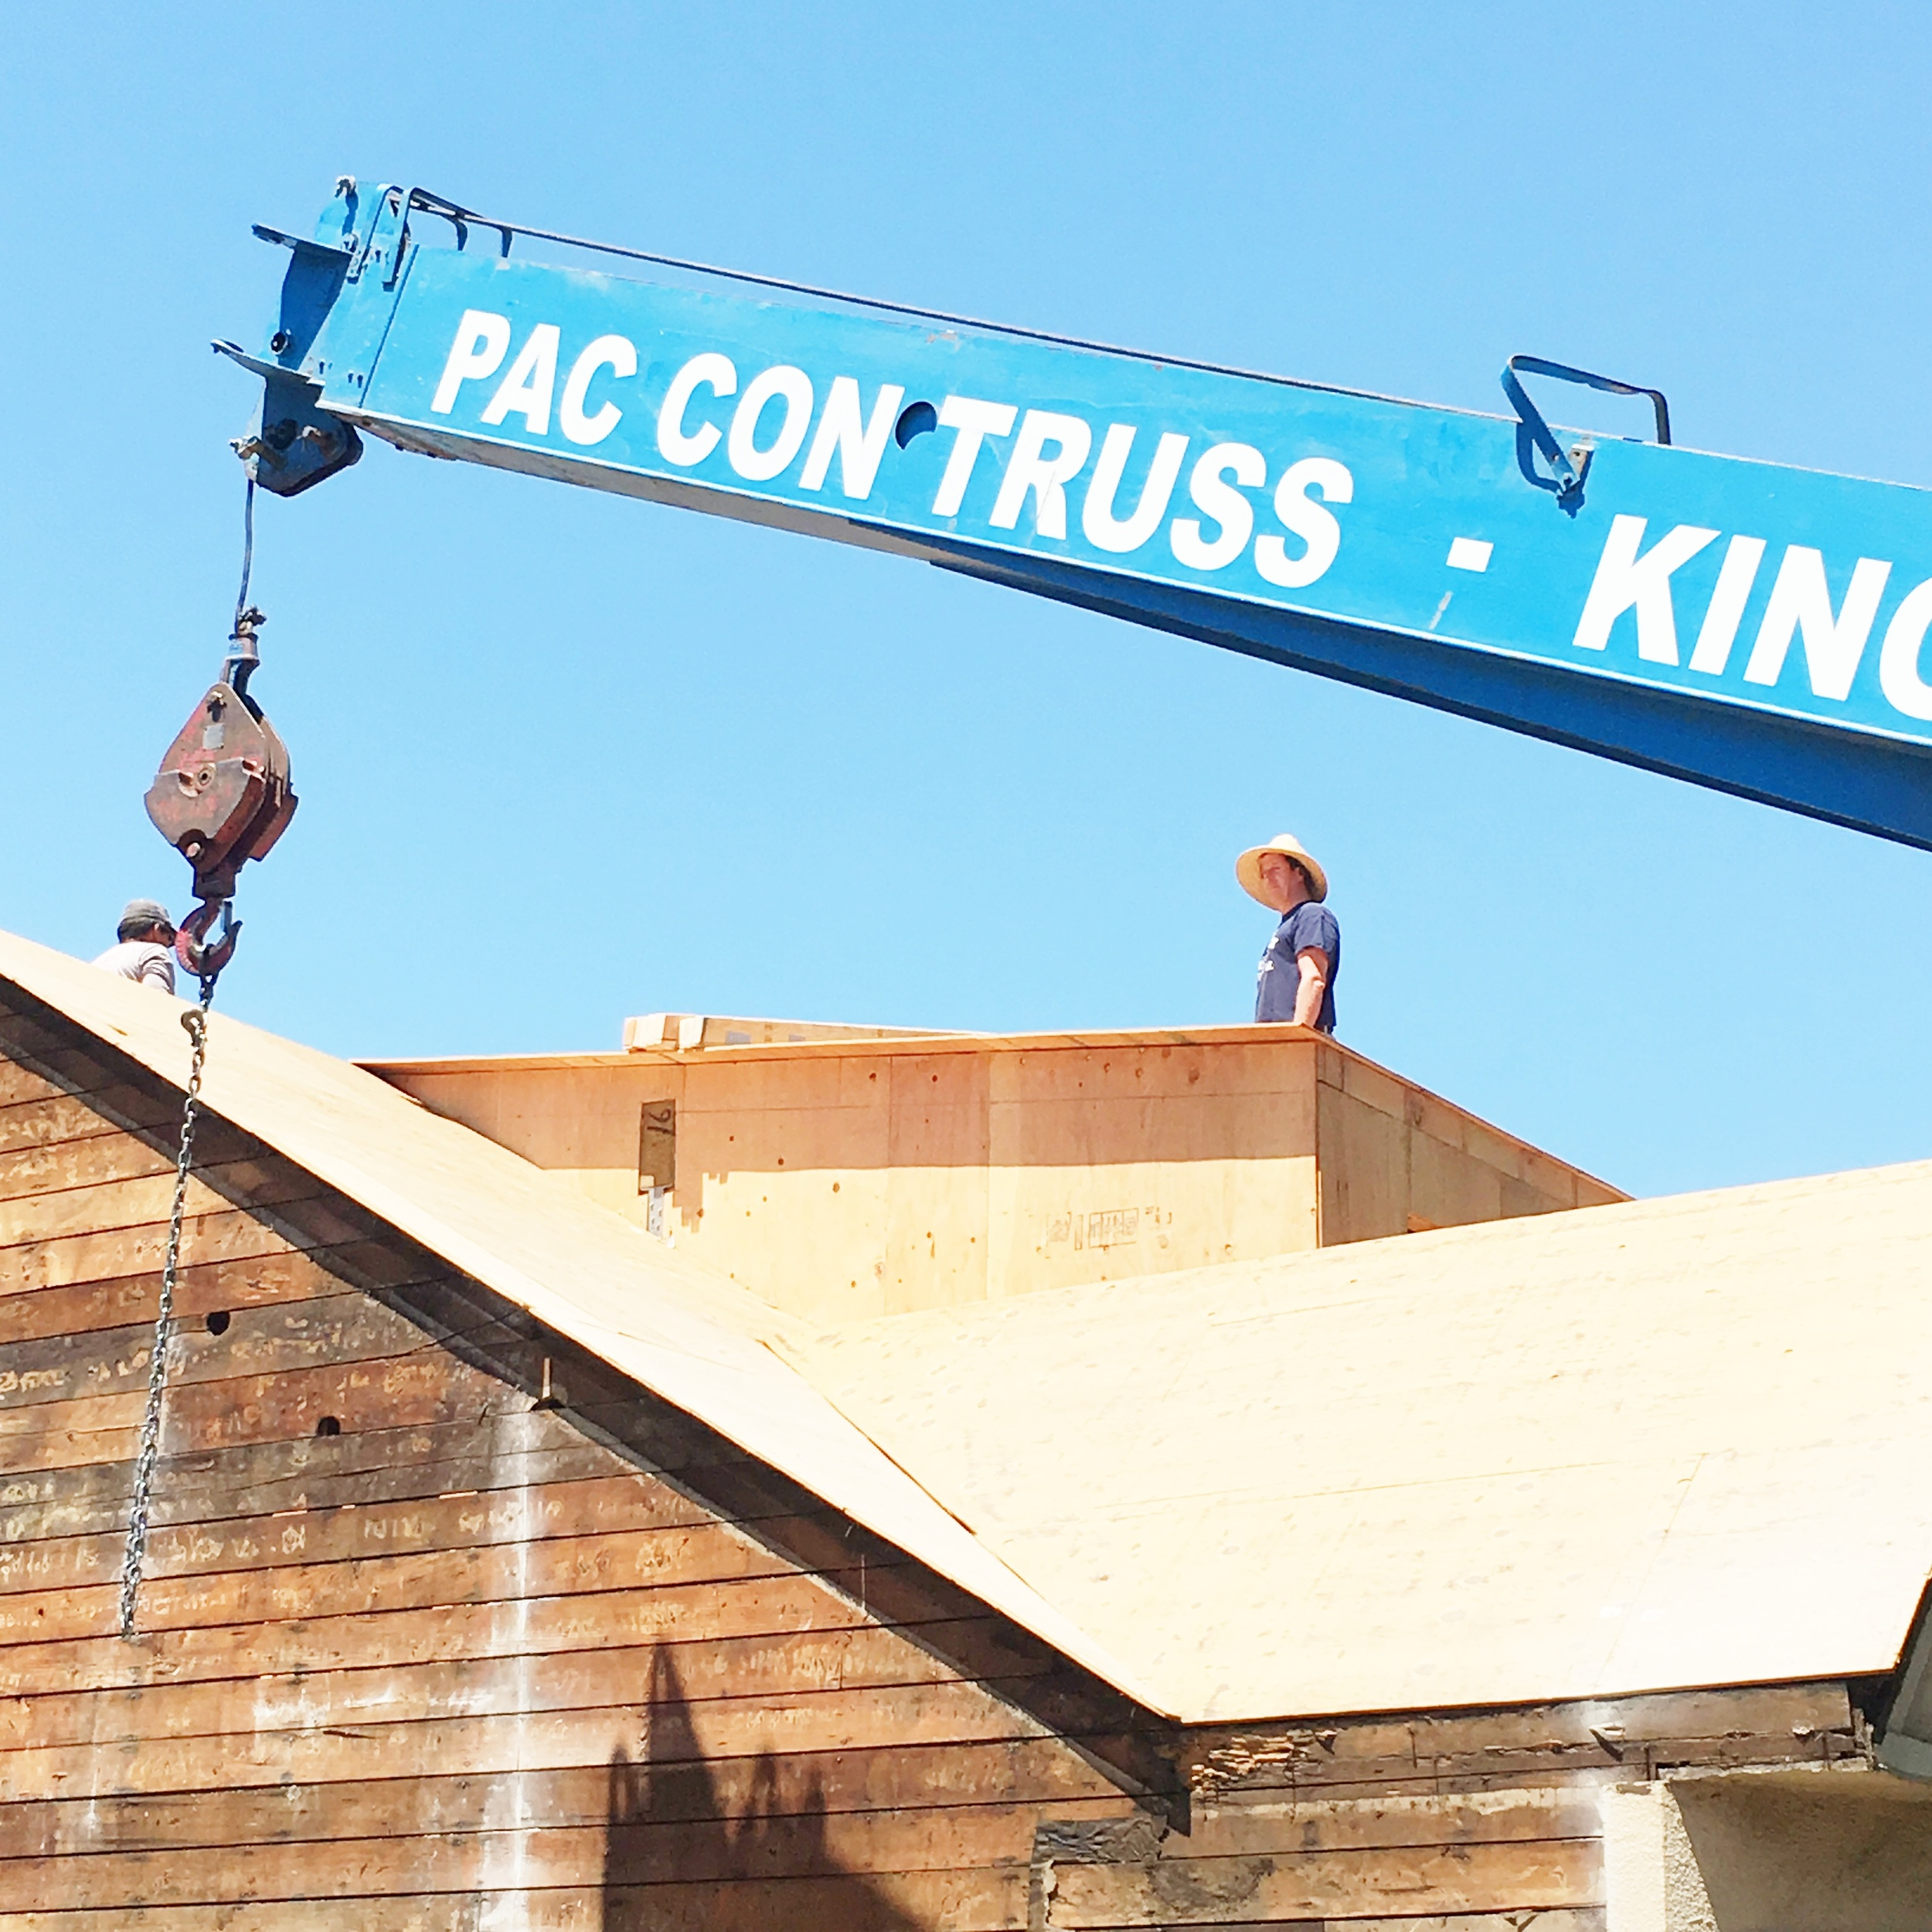 Just a cool shot of Lance on the roof waiting for the crane to start doing its stuff.